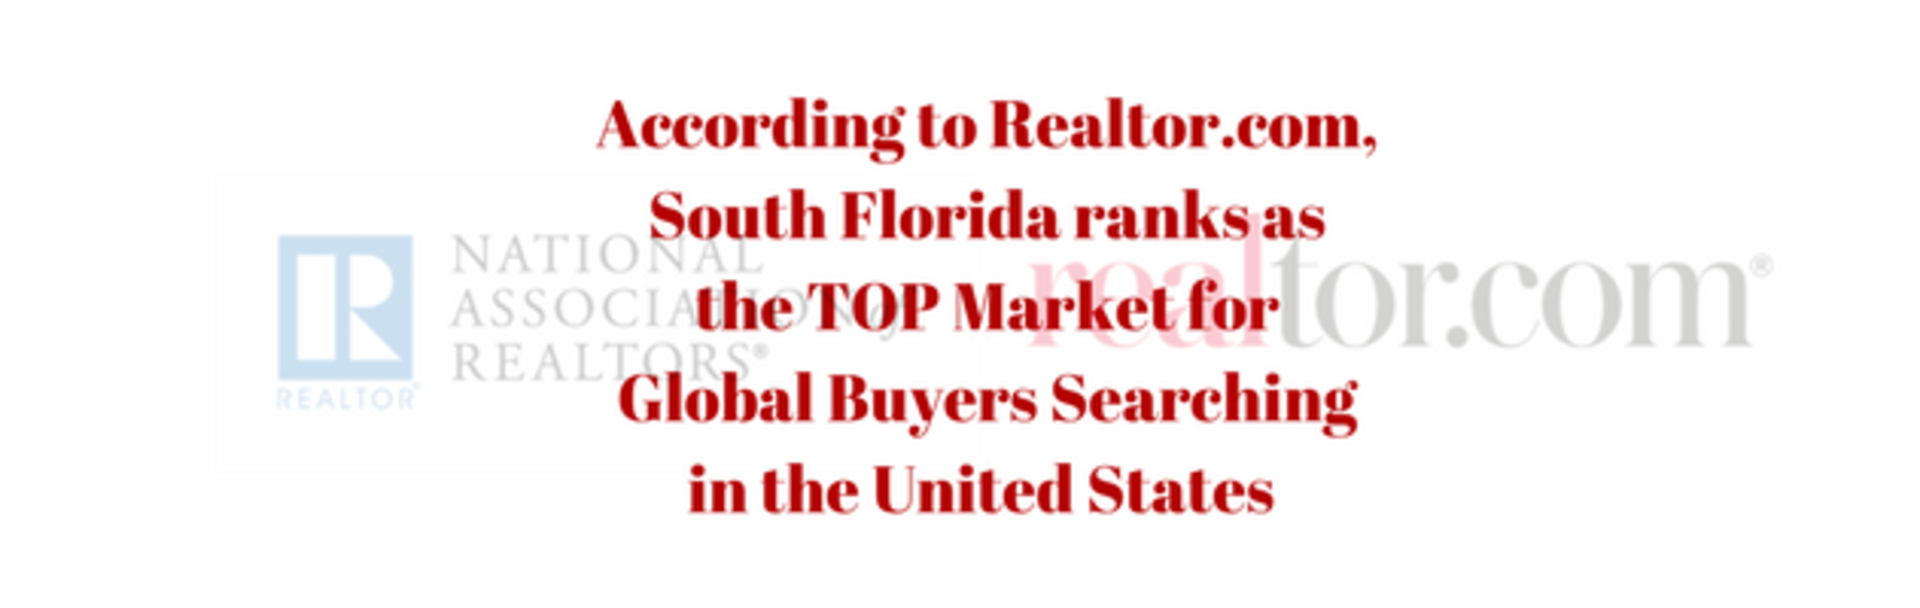 Realtor.com: Where are Global Buyers Searching in the United States?